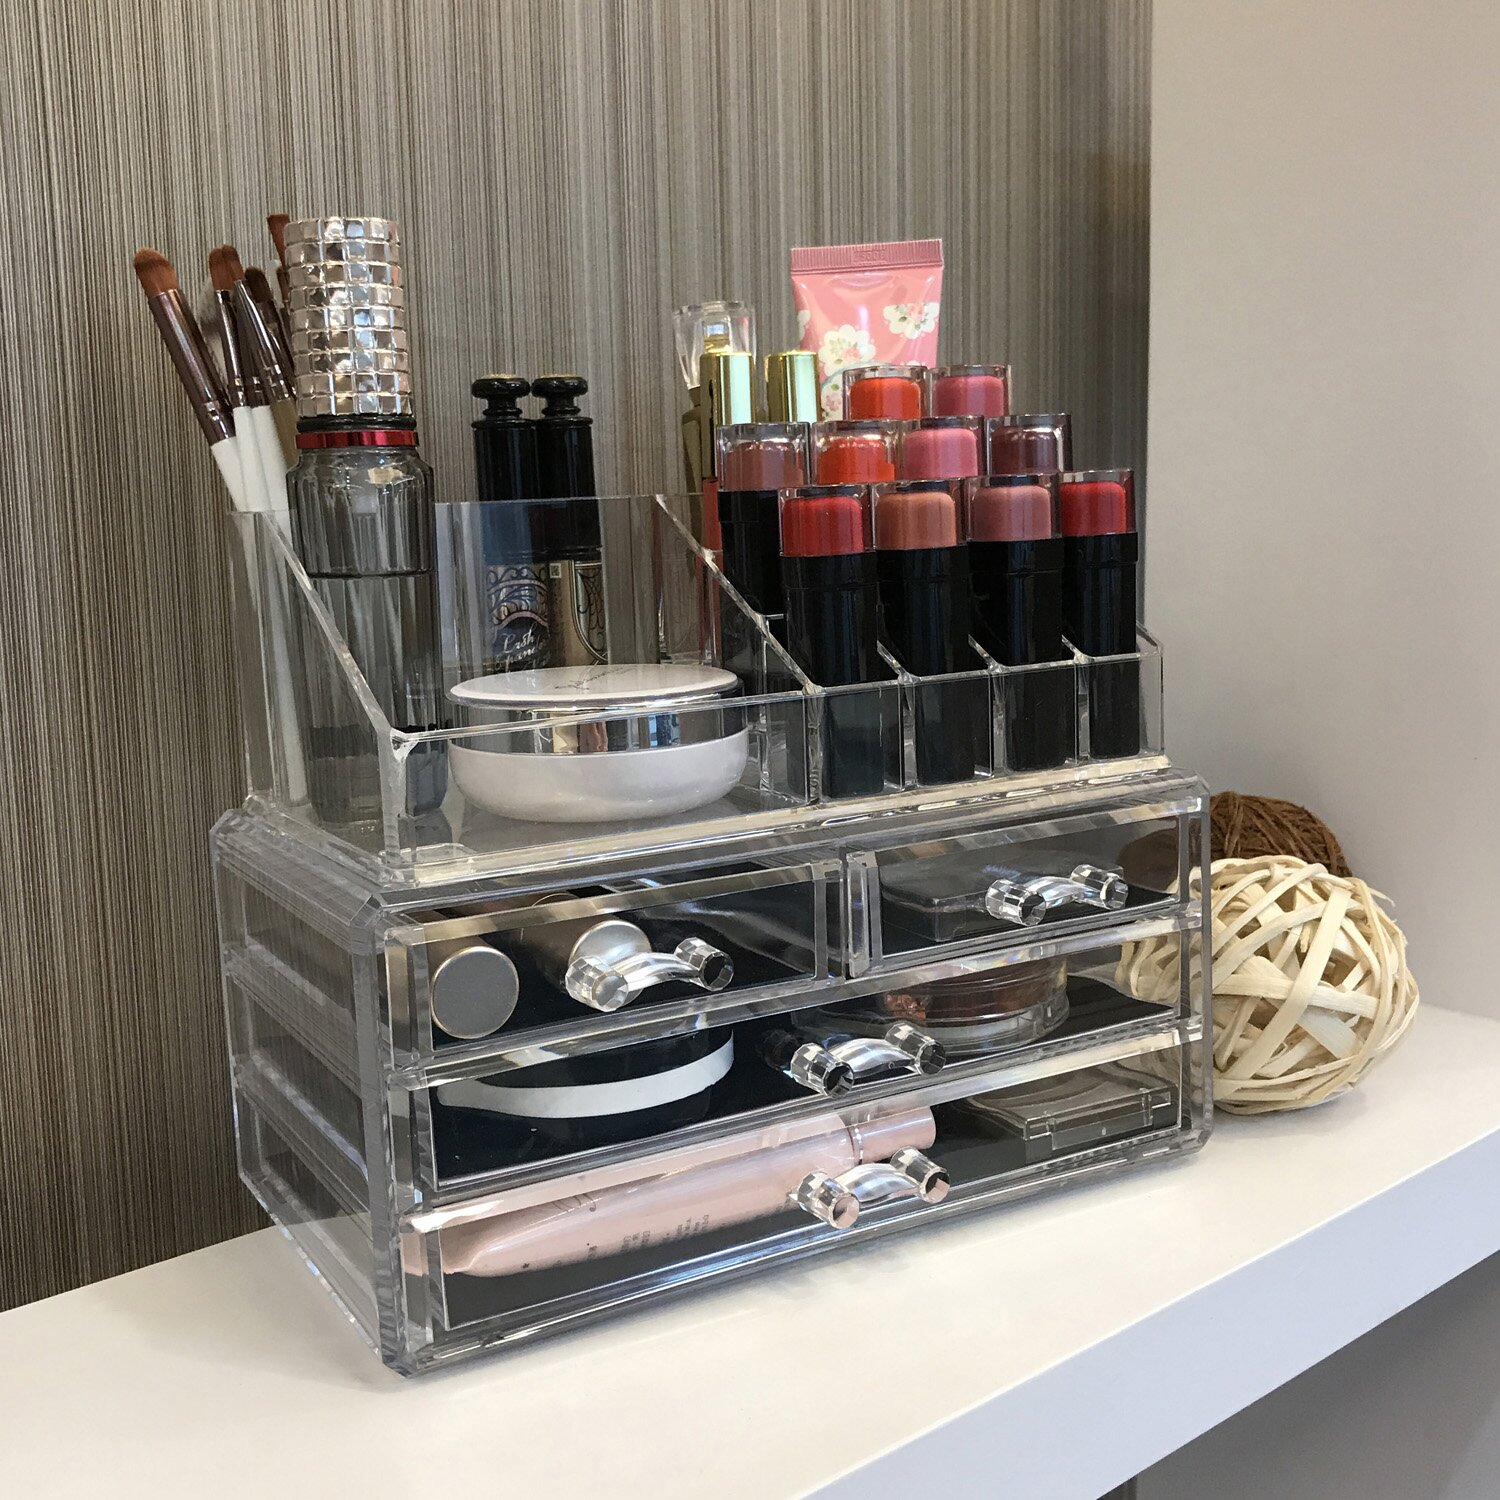 Rebrilliant Jewelry And Cosmetic Organizer Amp Reviews Wayfair